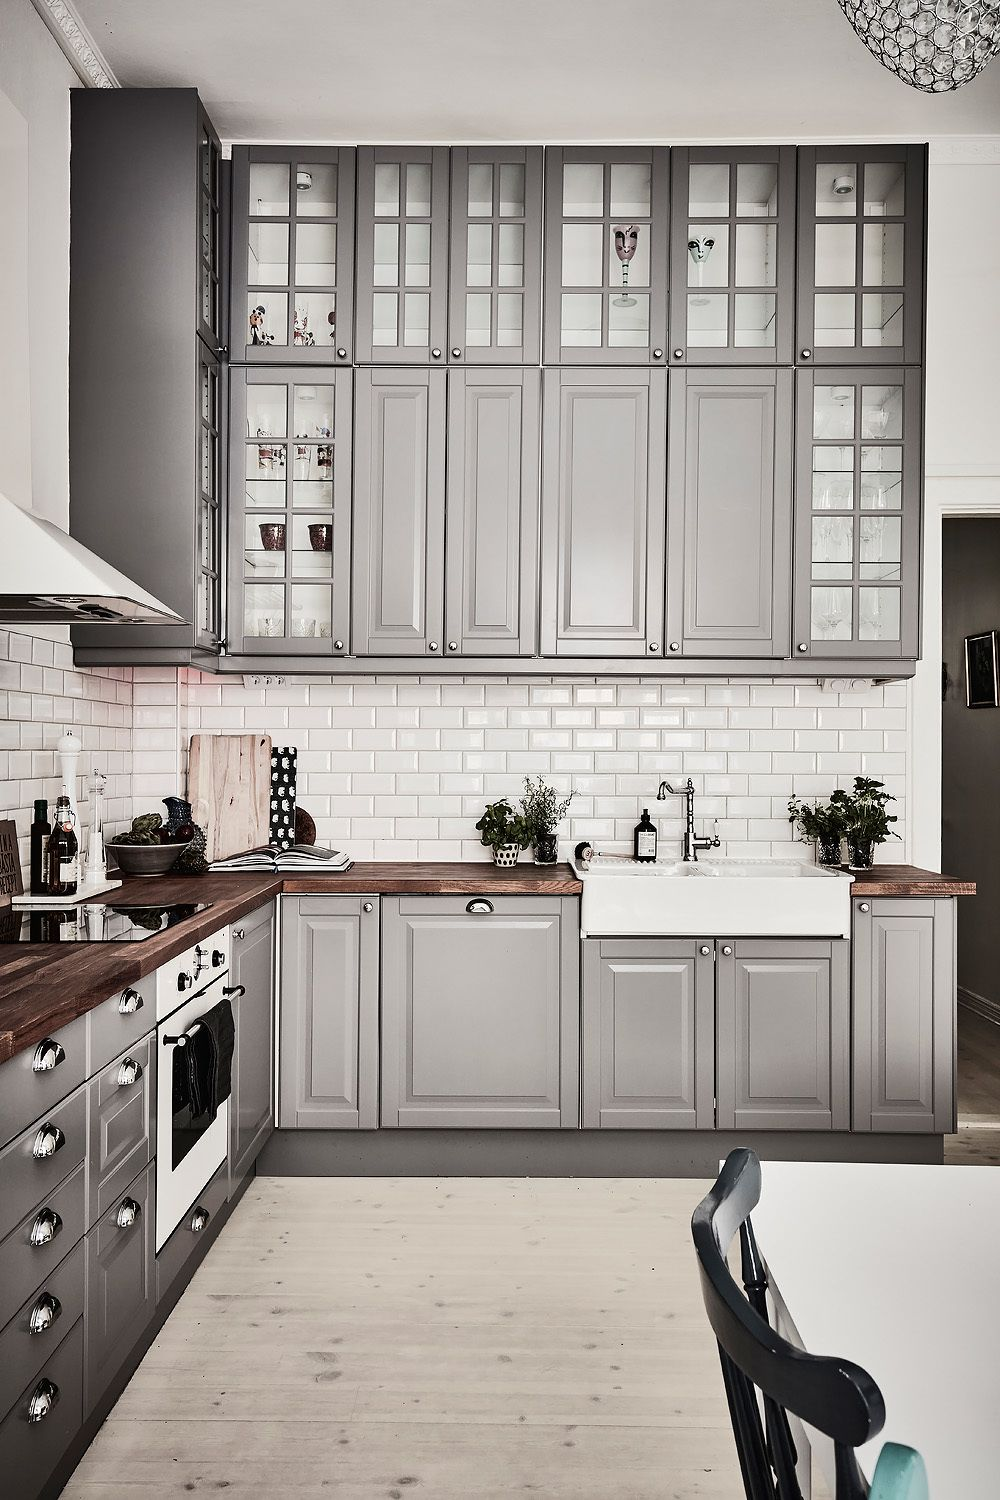 Inspiring Kitchens You Won\'t Believe are IKEA | Pinterest | Gray ...